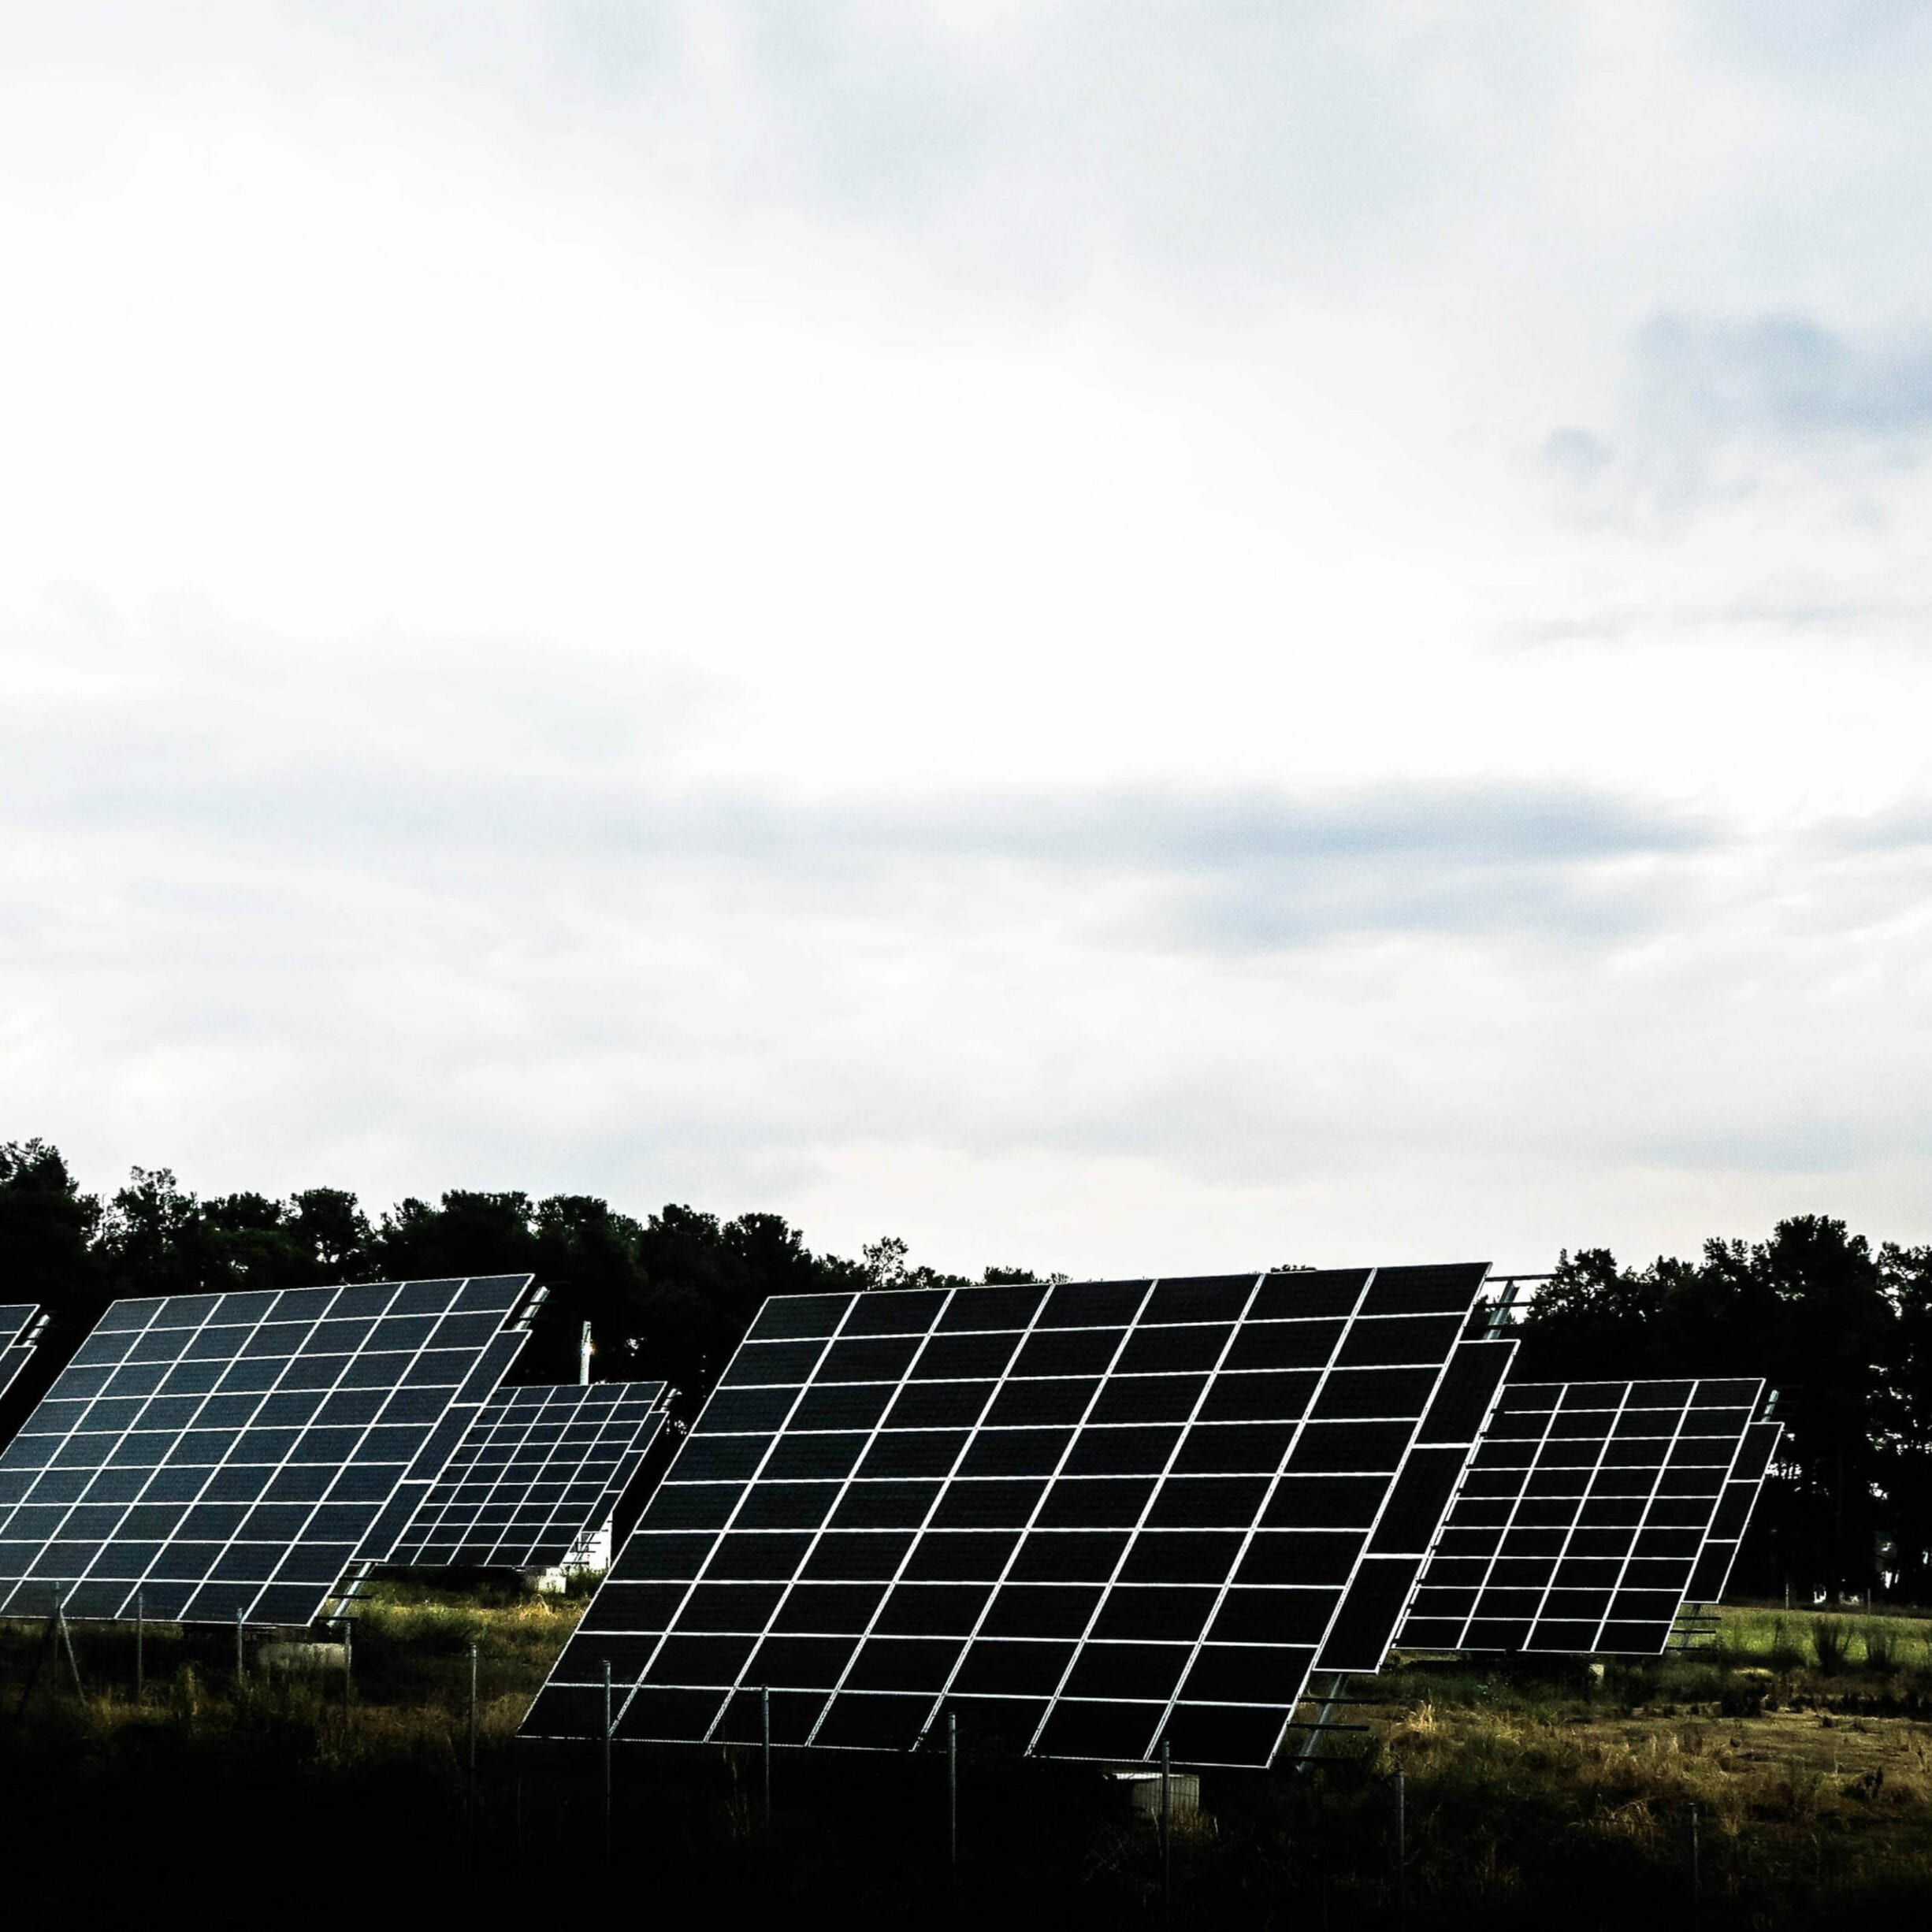 The Major Hurdles Standing in the Way of Green Energy